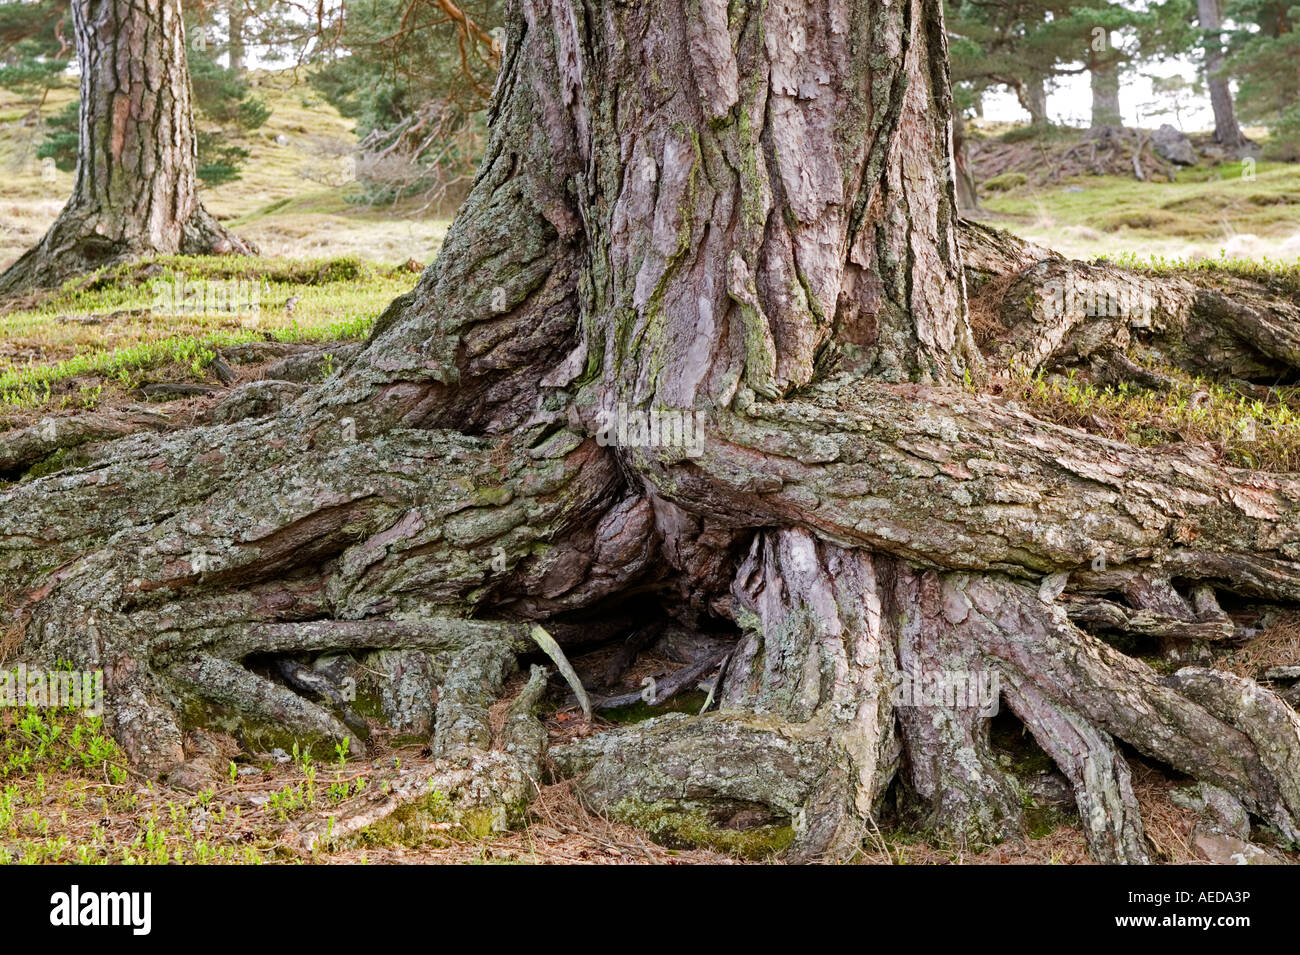 the roots and trunk of a scots pine tree in forest Glen Lyon Scotland - Stock Image